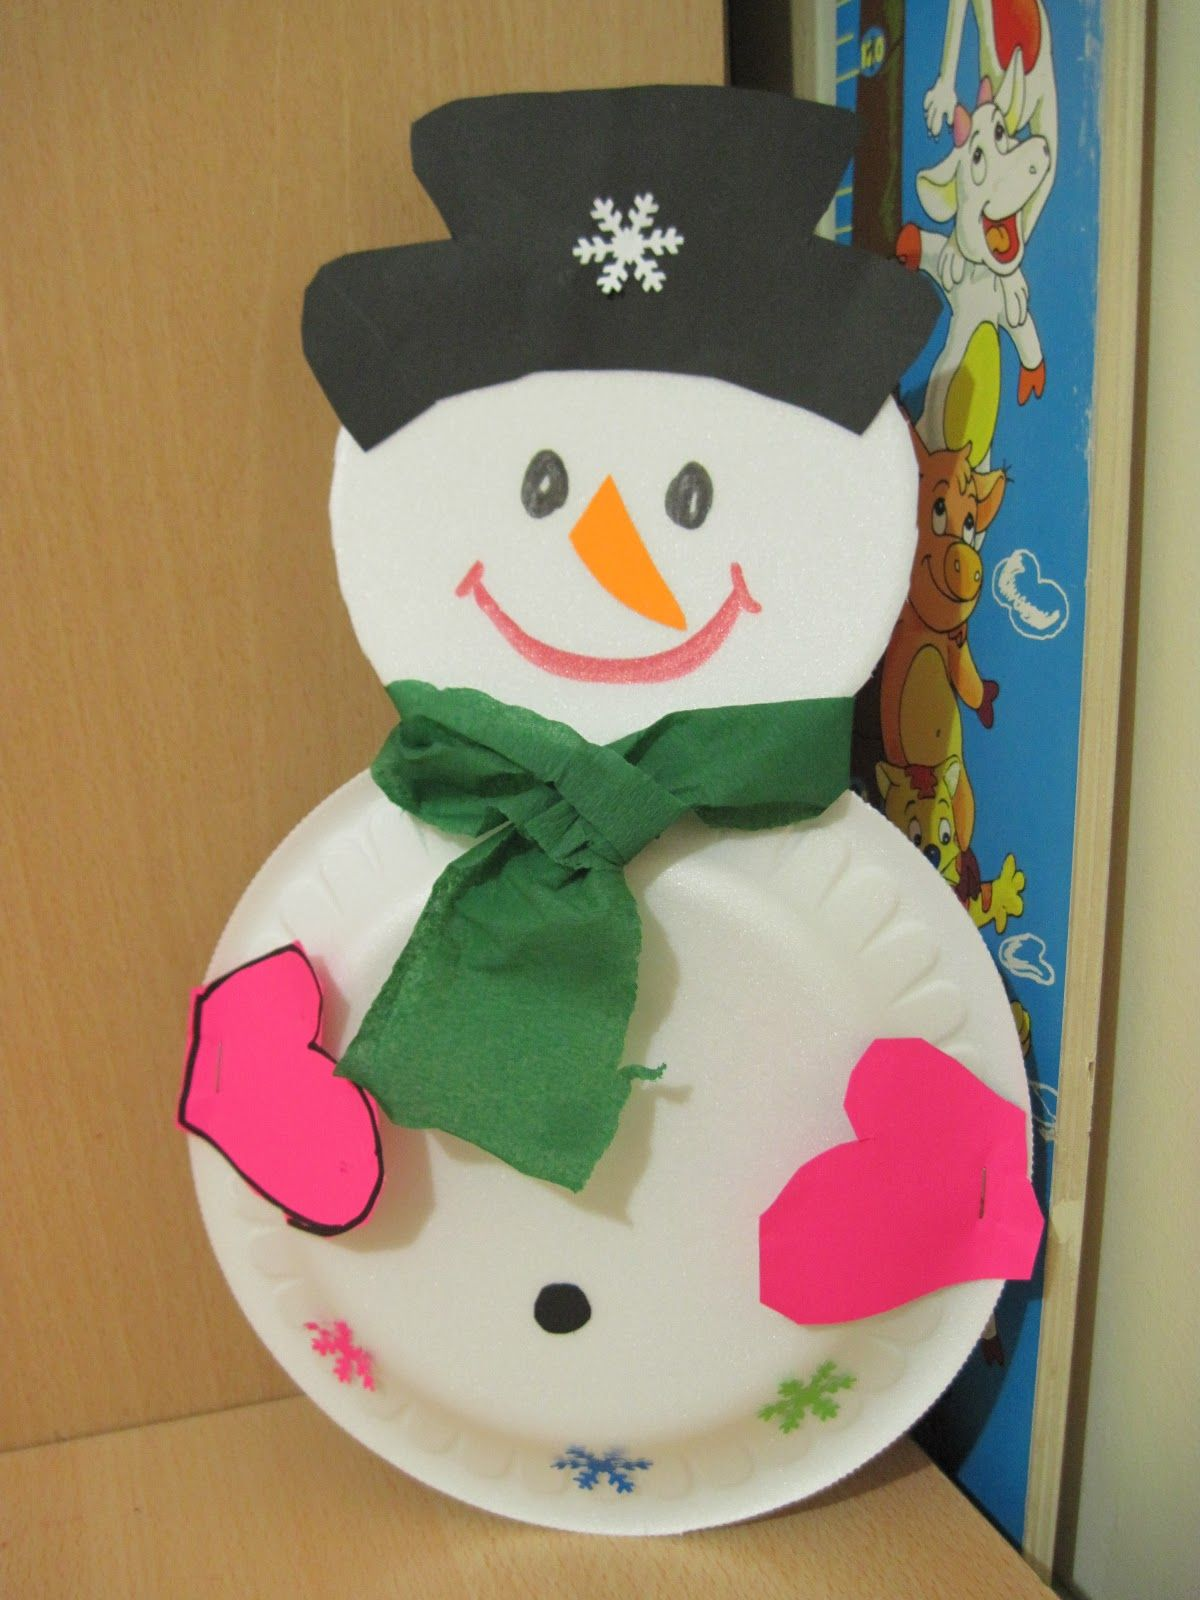 Paper plate snowman craft idea for kids crafts and worksheets paper plate snowman craft idea for kids crafts and worksheets for preschooltoddler and jeuxipadfo Gallery